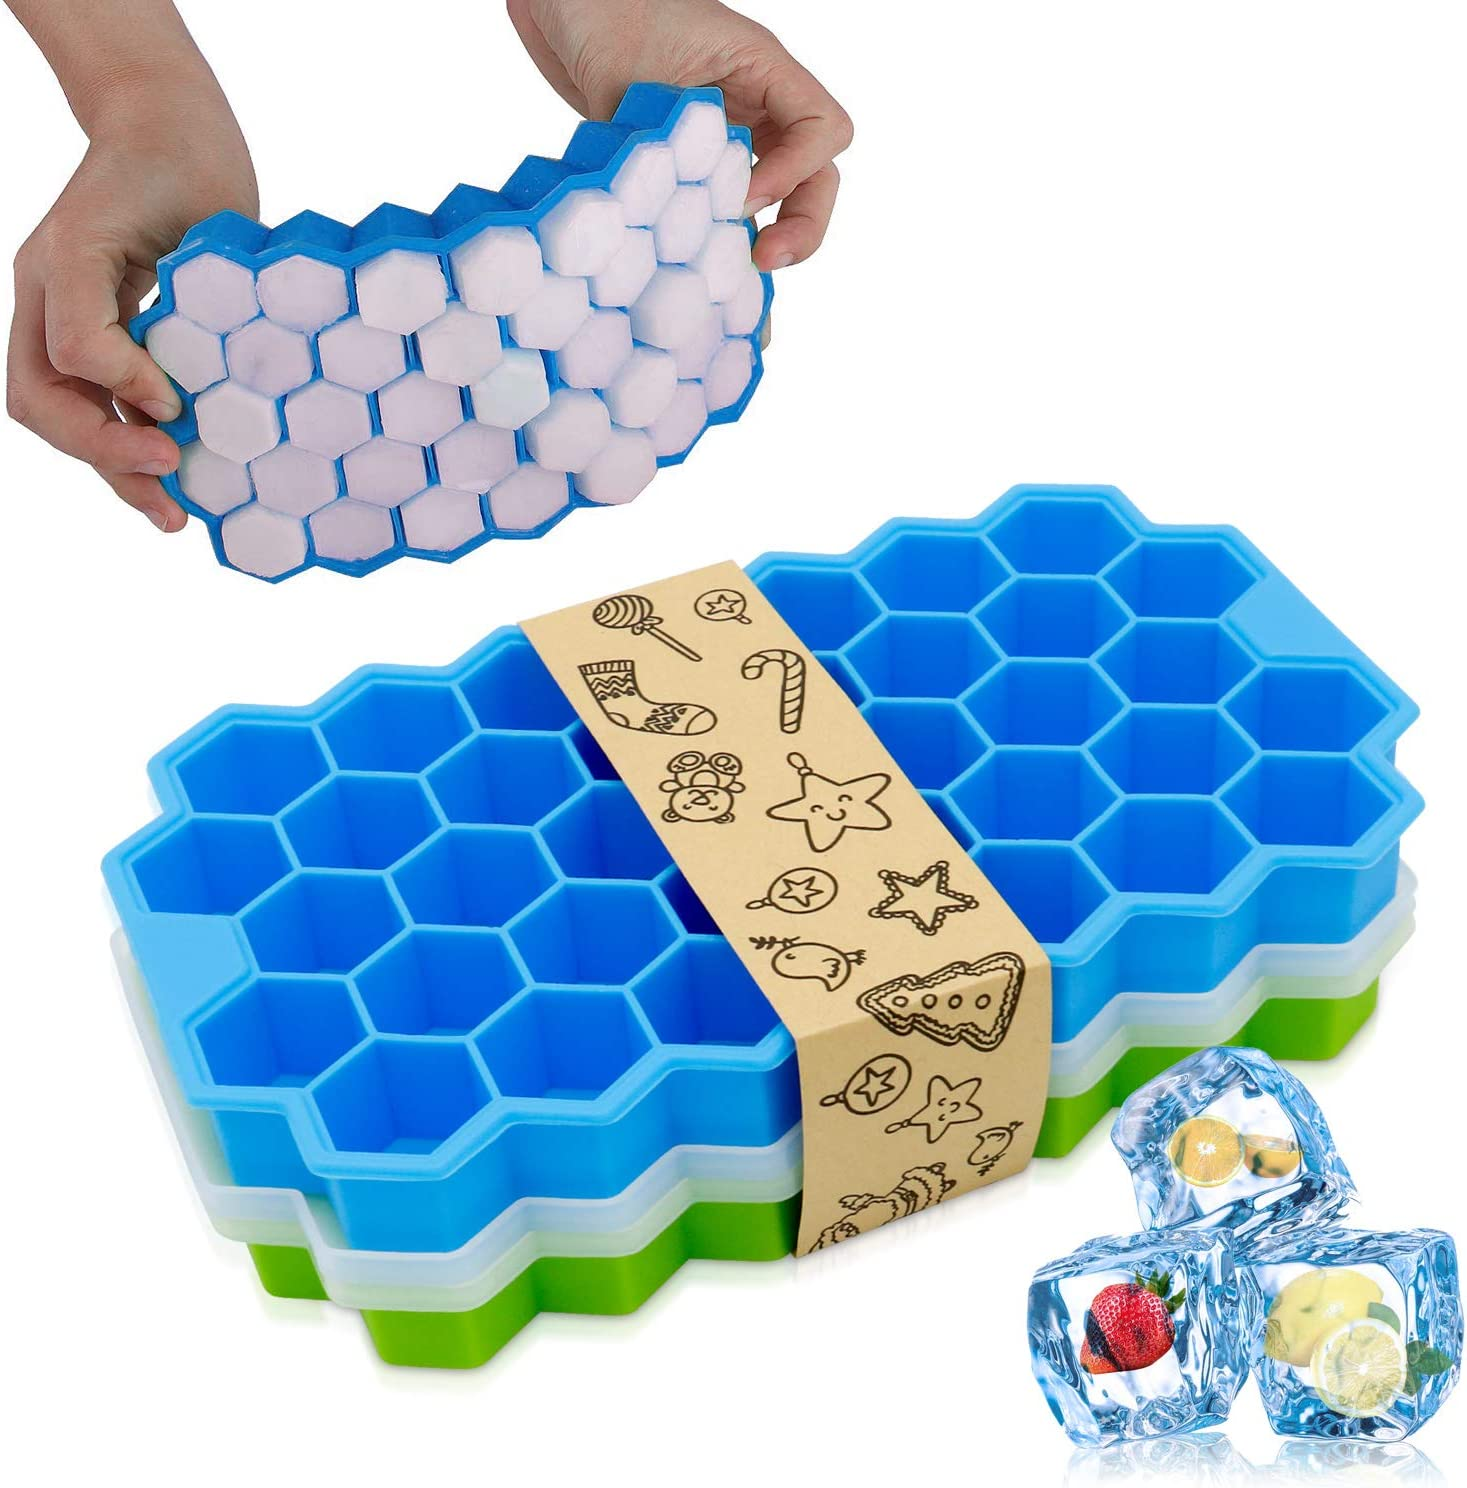 Cyan Blue Stackable /& Flexible BPA Free Nuovoware 2 Pack Ice Cube Trays Totally 76-Ice Pop Molds Easy-Release Silicone Ice Pop Makers with Spill-Resistant Removable Lid Kitchen Gadget